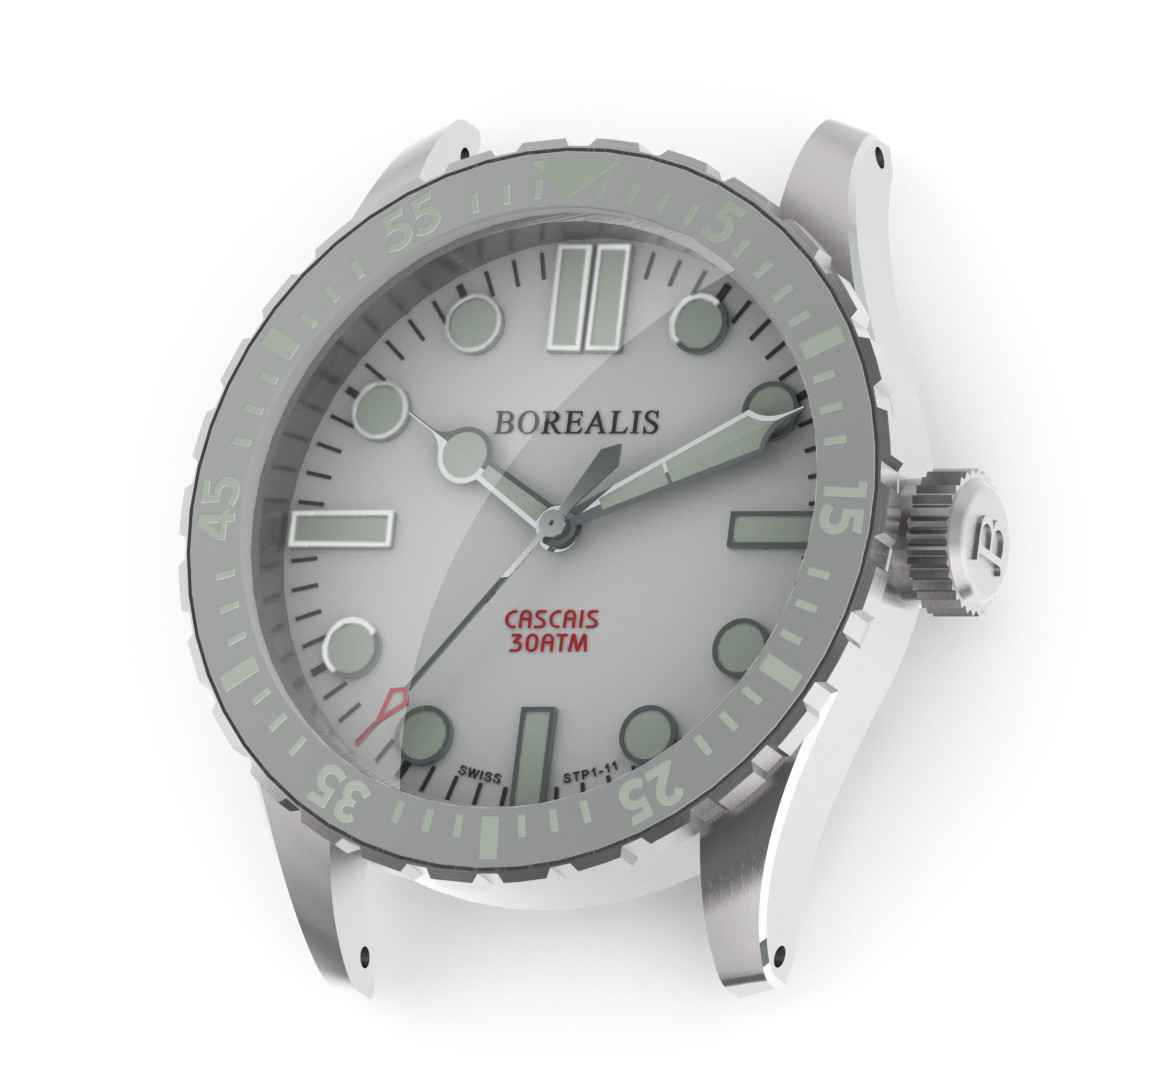 Borealis Cascais White Dial Cathedral Hands No Date C3 X1 Lume